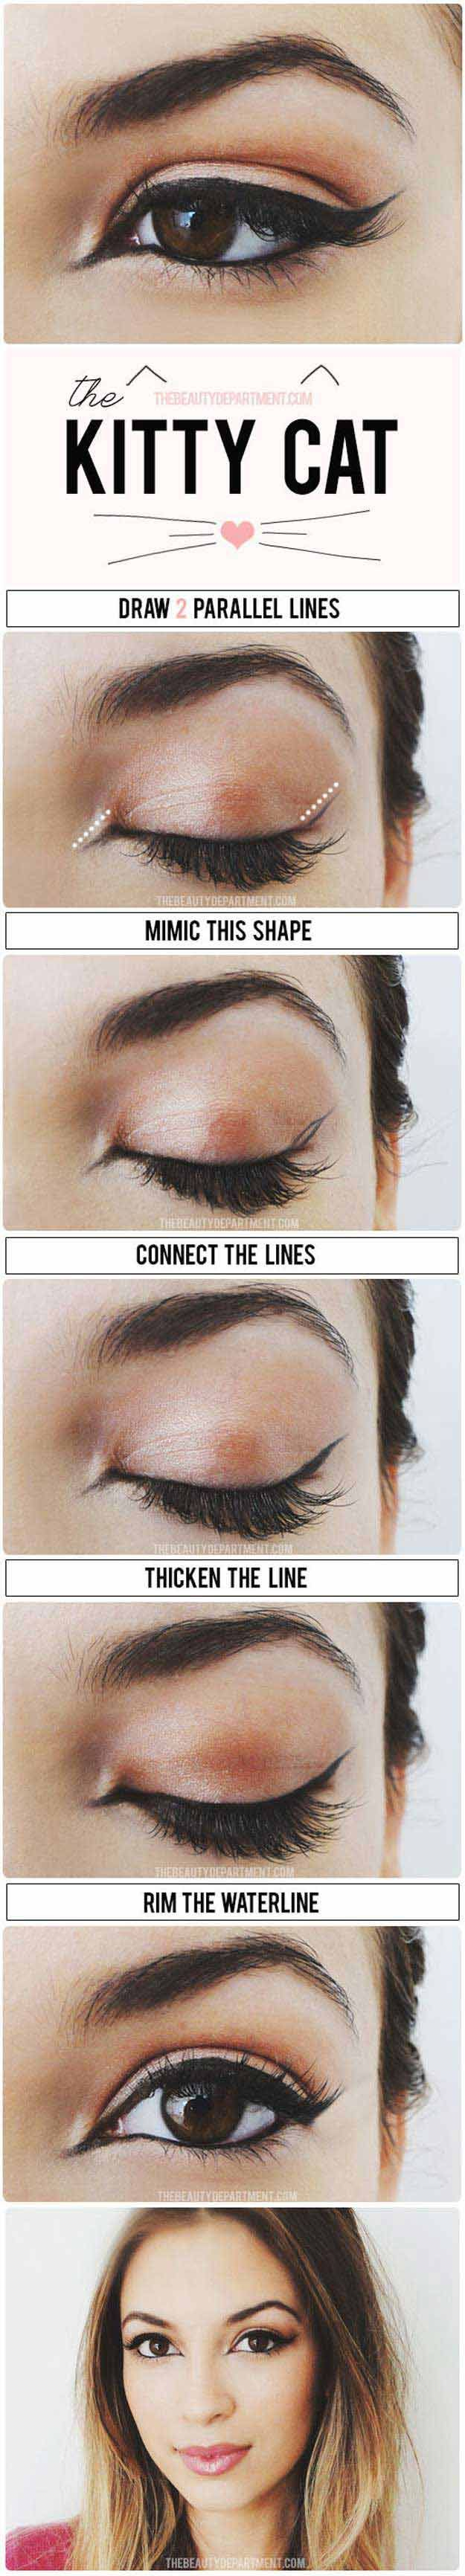 Makeup Tutorials for Picture Perfect Selfies - The Cat Eye Stylized - Tips, Idea...